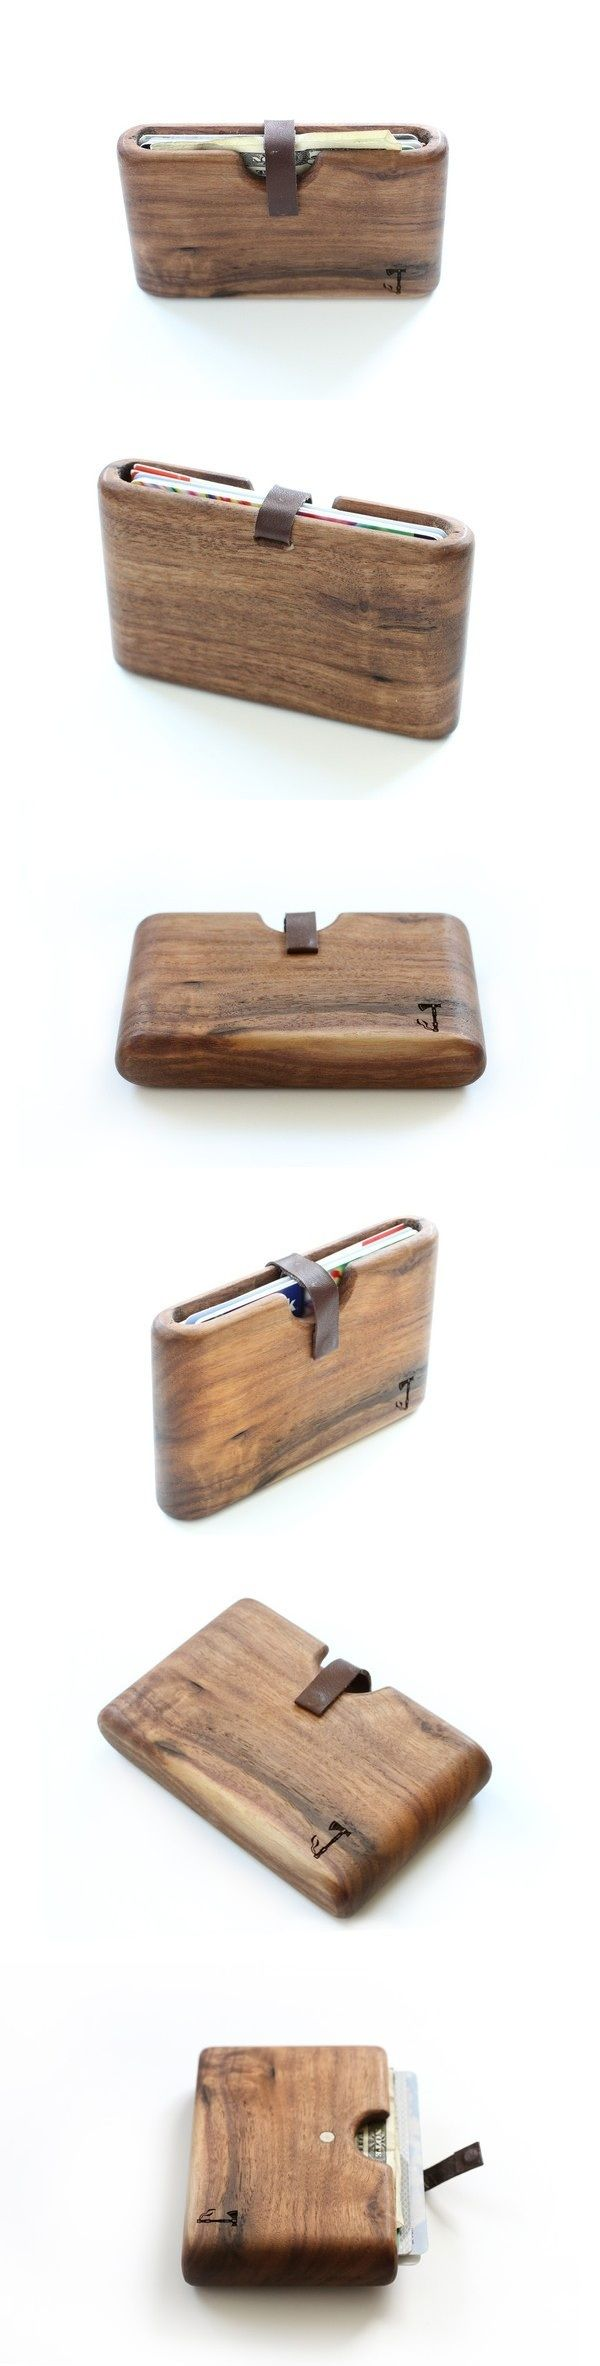 The walnut wood wallet is handcrafted out of a single piece of wood. Because of this it is extremely strong. It will not break if it's in your back pocket and is smaller than many normal sized wallets.